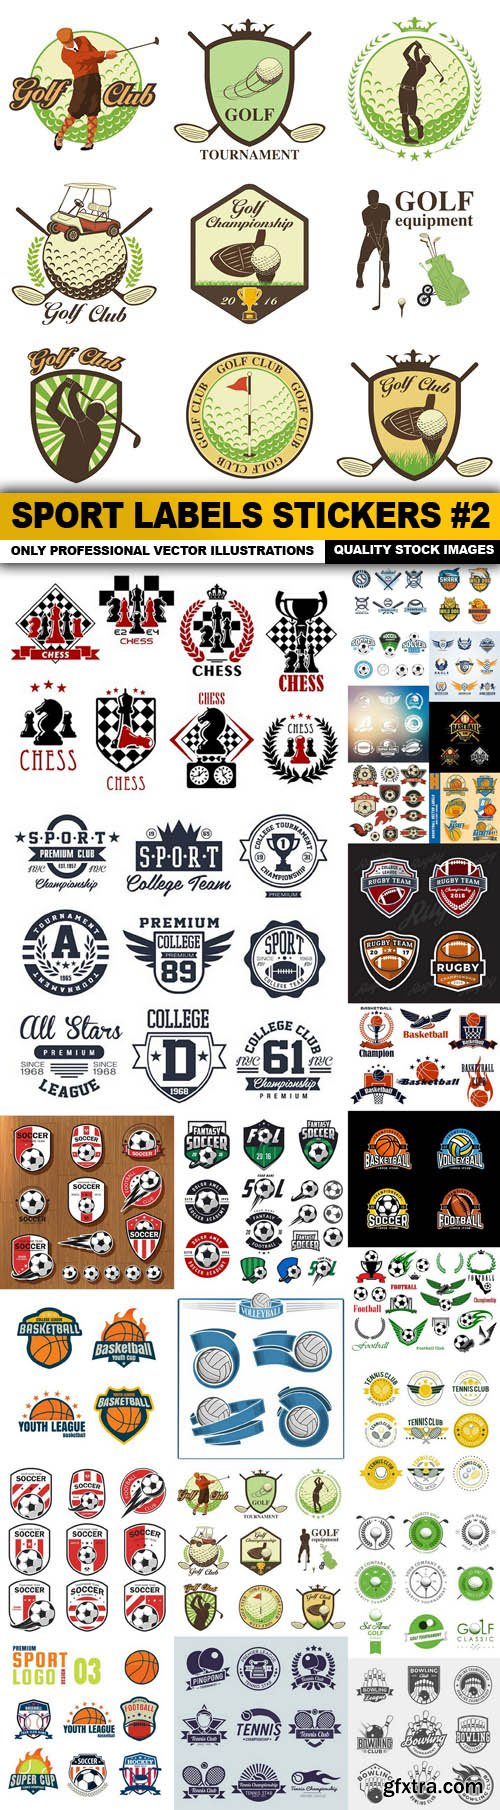 Sport Labels Stickers #2 - 25 Vector